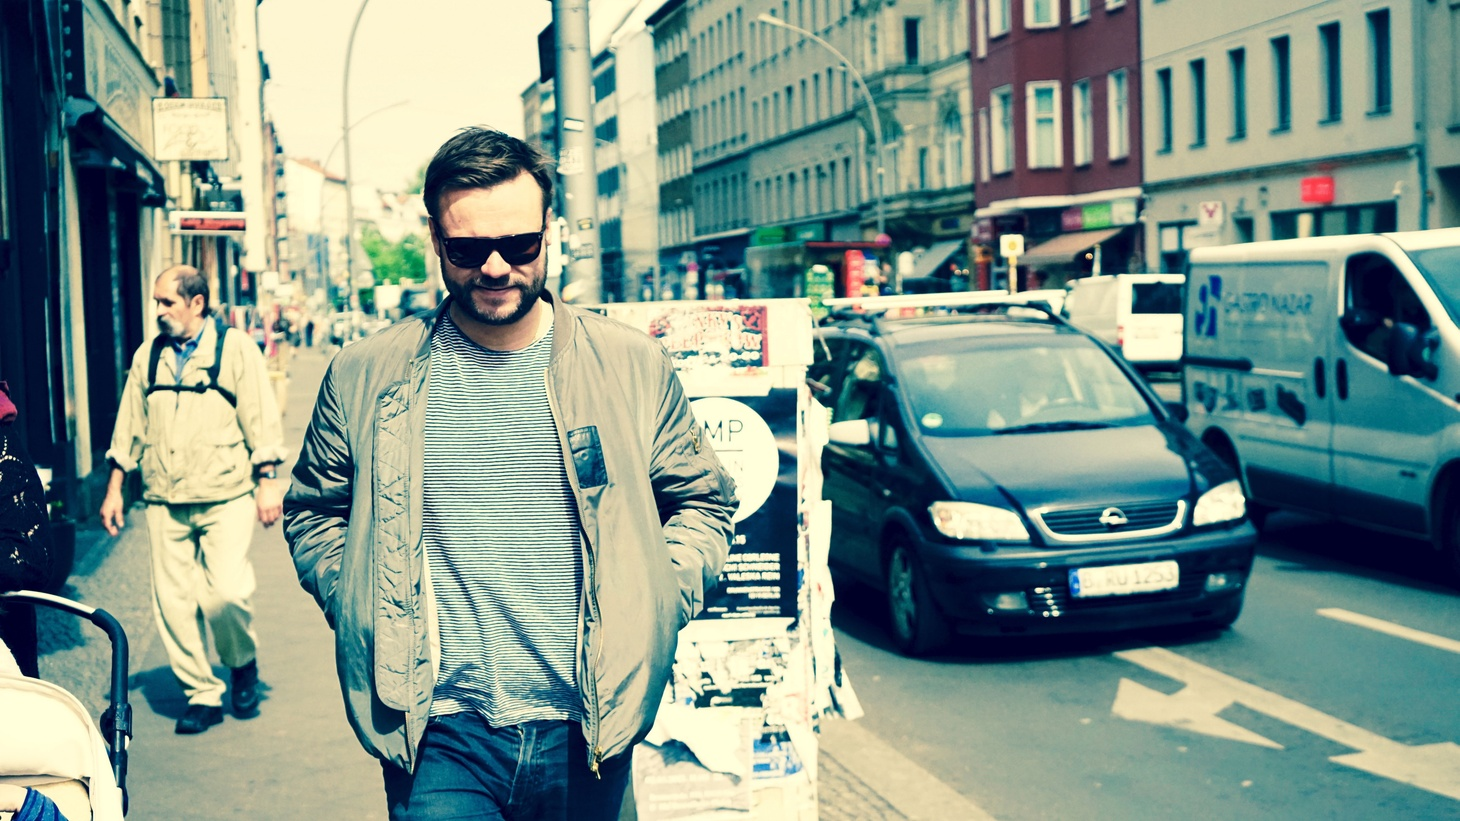 Hamburg-native Marco Niemerski, known as Tensnake, grew up with a versatile music palette ranging from disco and boogie, to soul, funk, and 80's pop. After years working the global scene, his record of smashing dancefloors worldwide as a DJ and producer has earned him a place of honor as a game-changing dance pioneer.